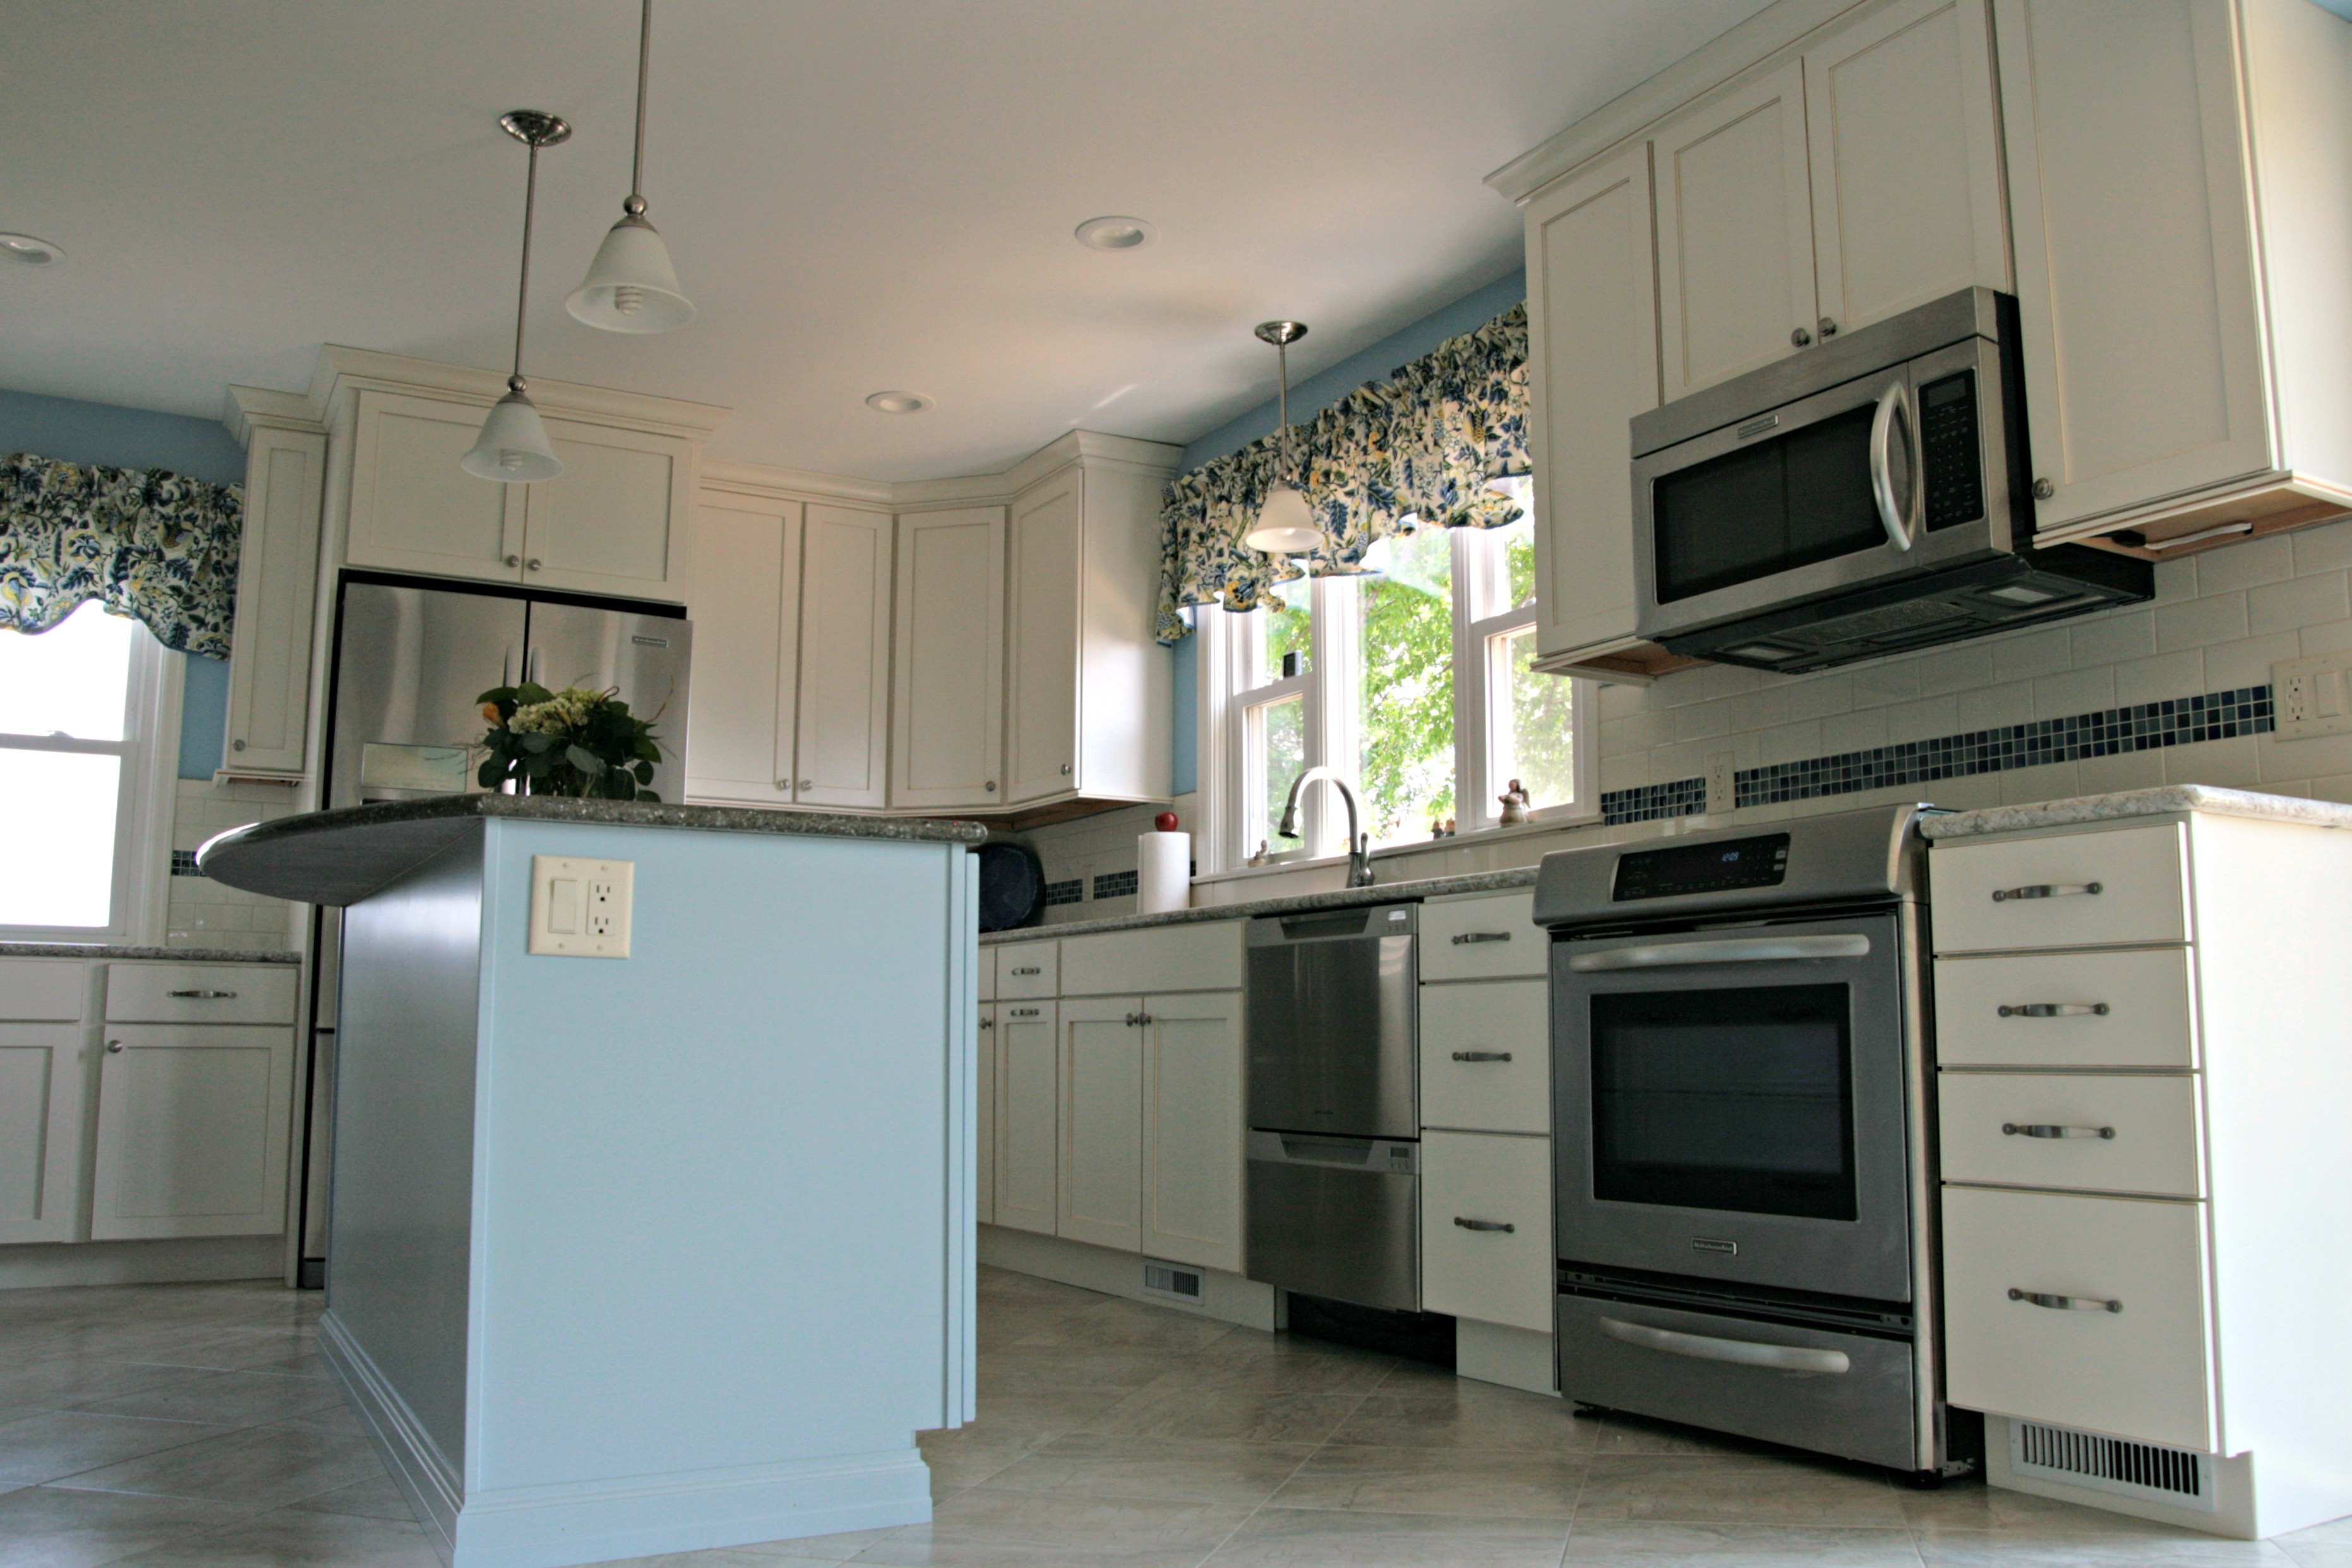 A Country Kitchen Remodel In White & Blue